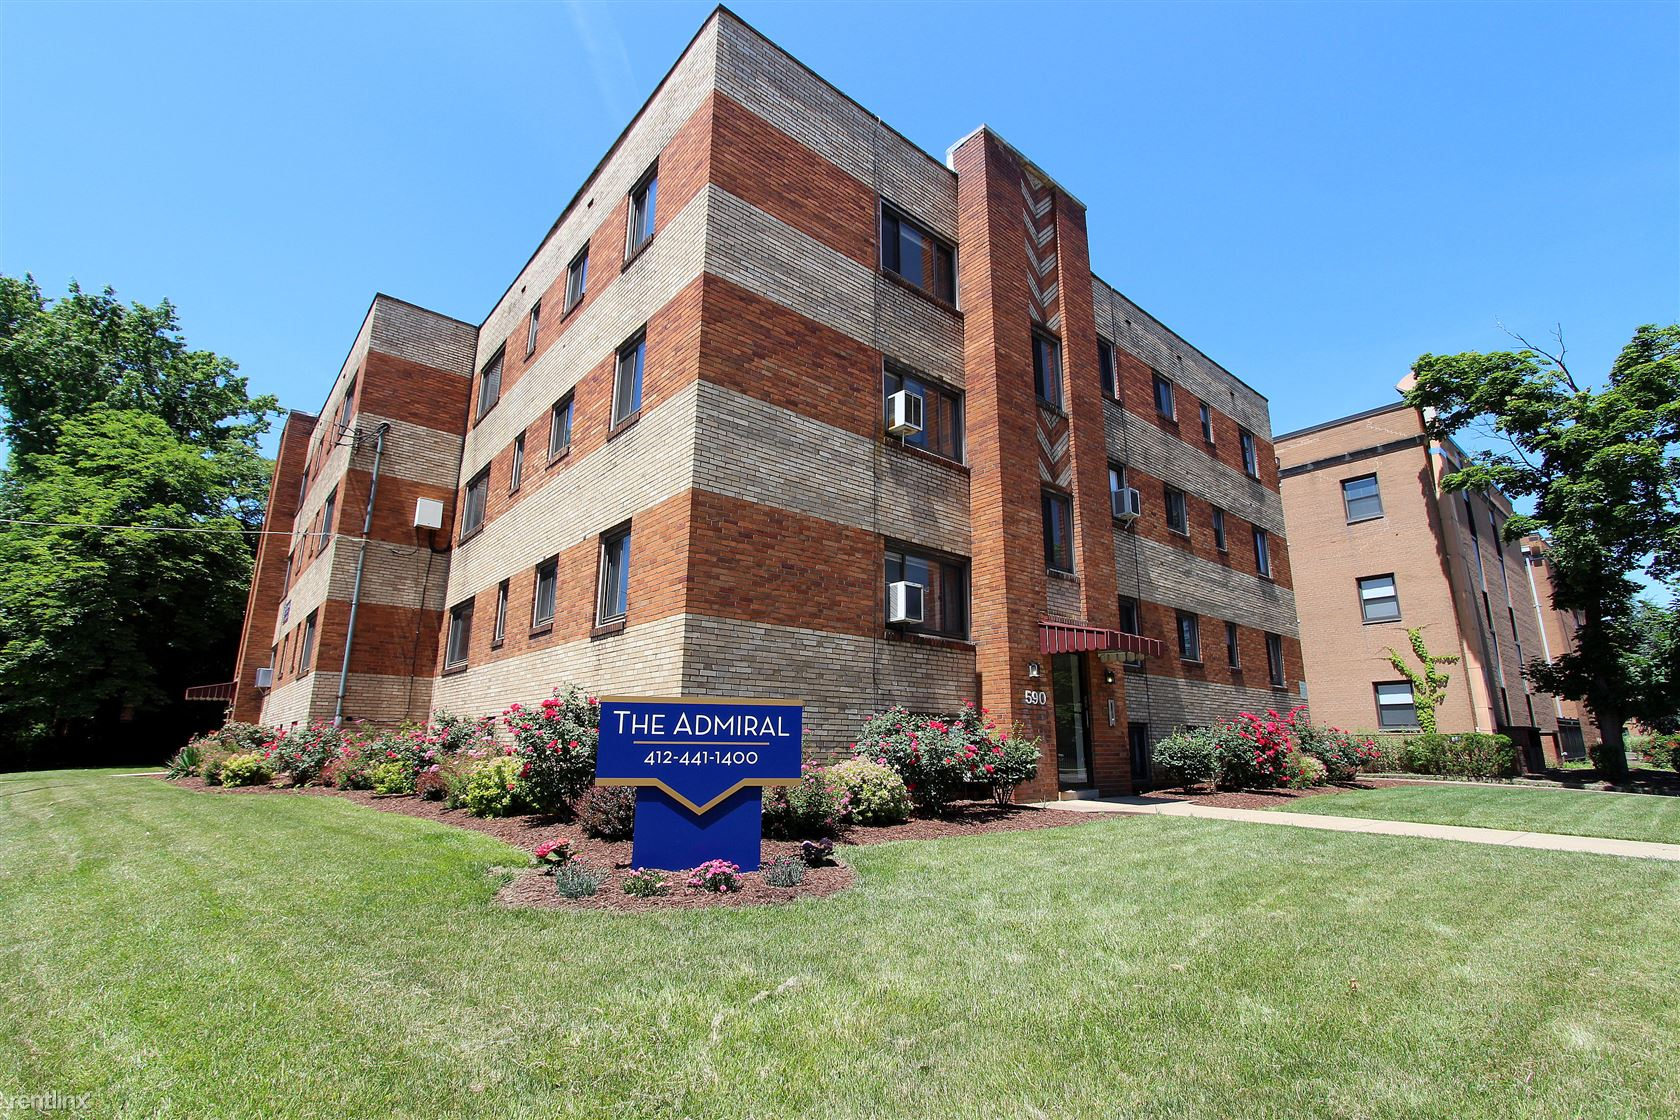 590 S Negley Ave, Pittsburgh, PA - 1,350 USD/ month